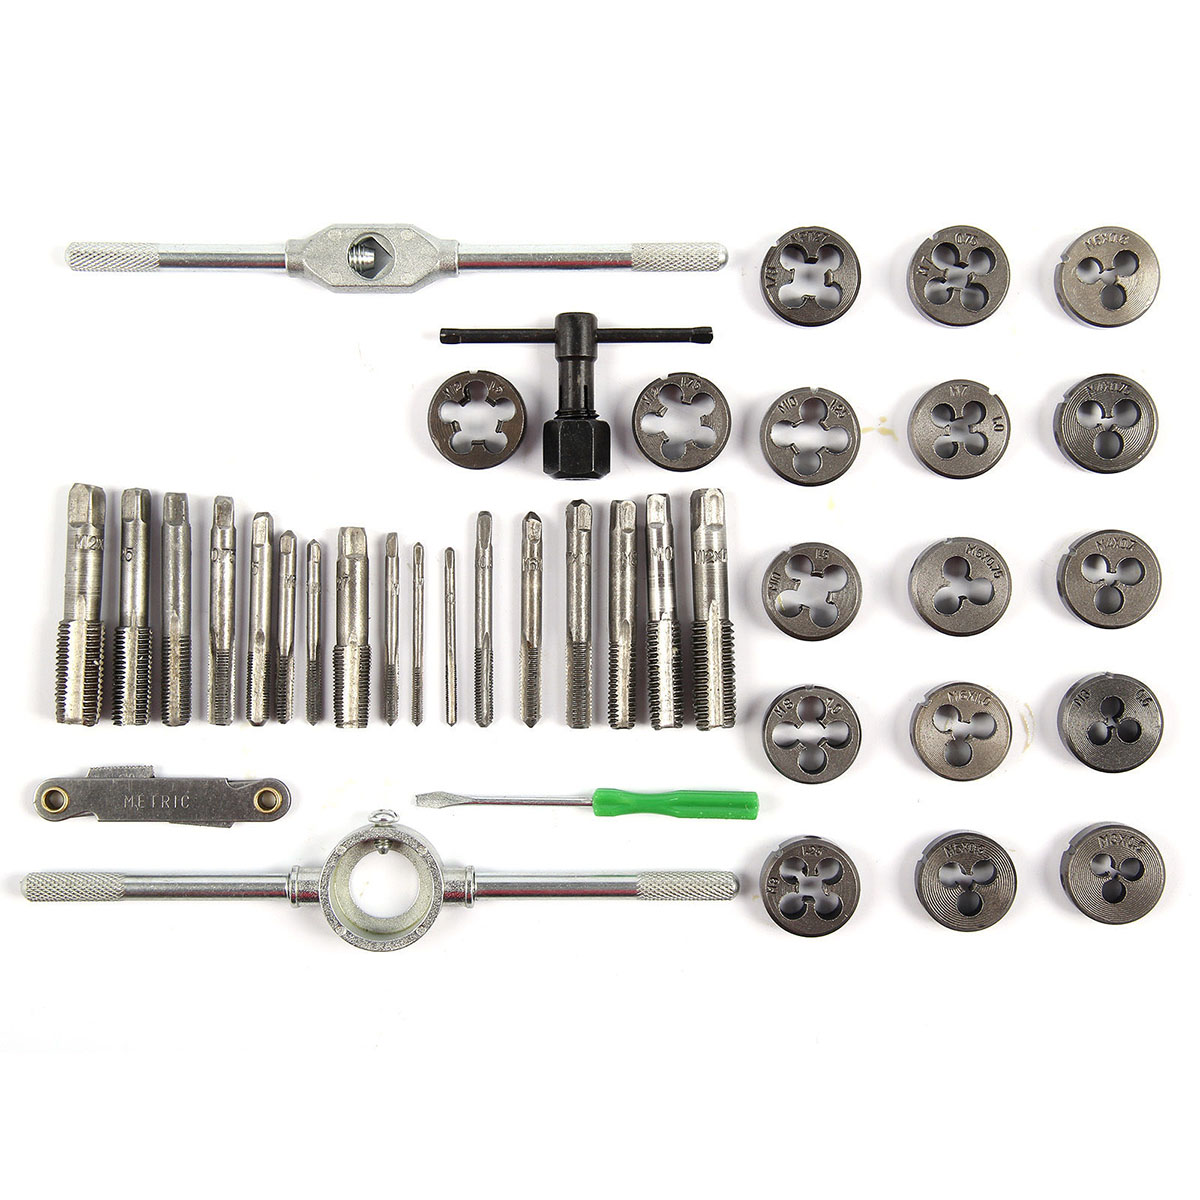 Image 3 - 40pcs Tap Die Set M3 M12 Screw Thread Metric Taps Wrench Dies DIY Kit Wrench Screw Threading Hand Tools Alloy Metal With Bag-in Tap & Die from Tools